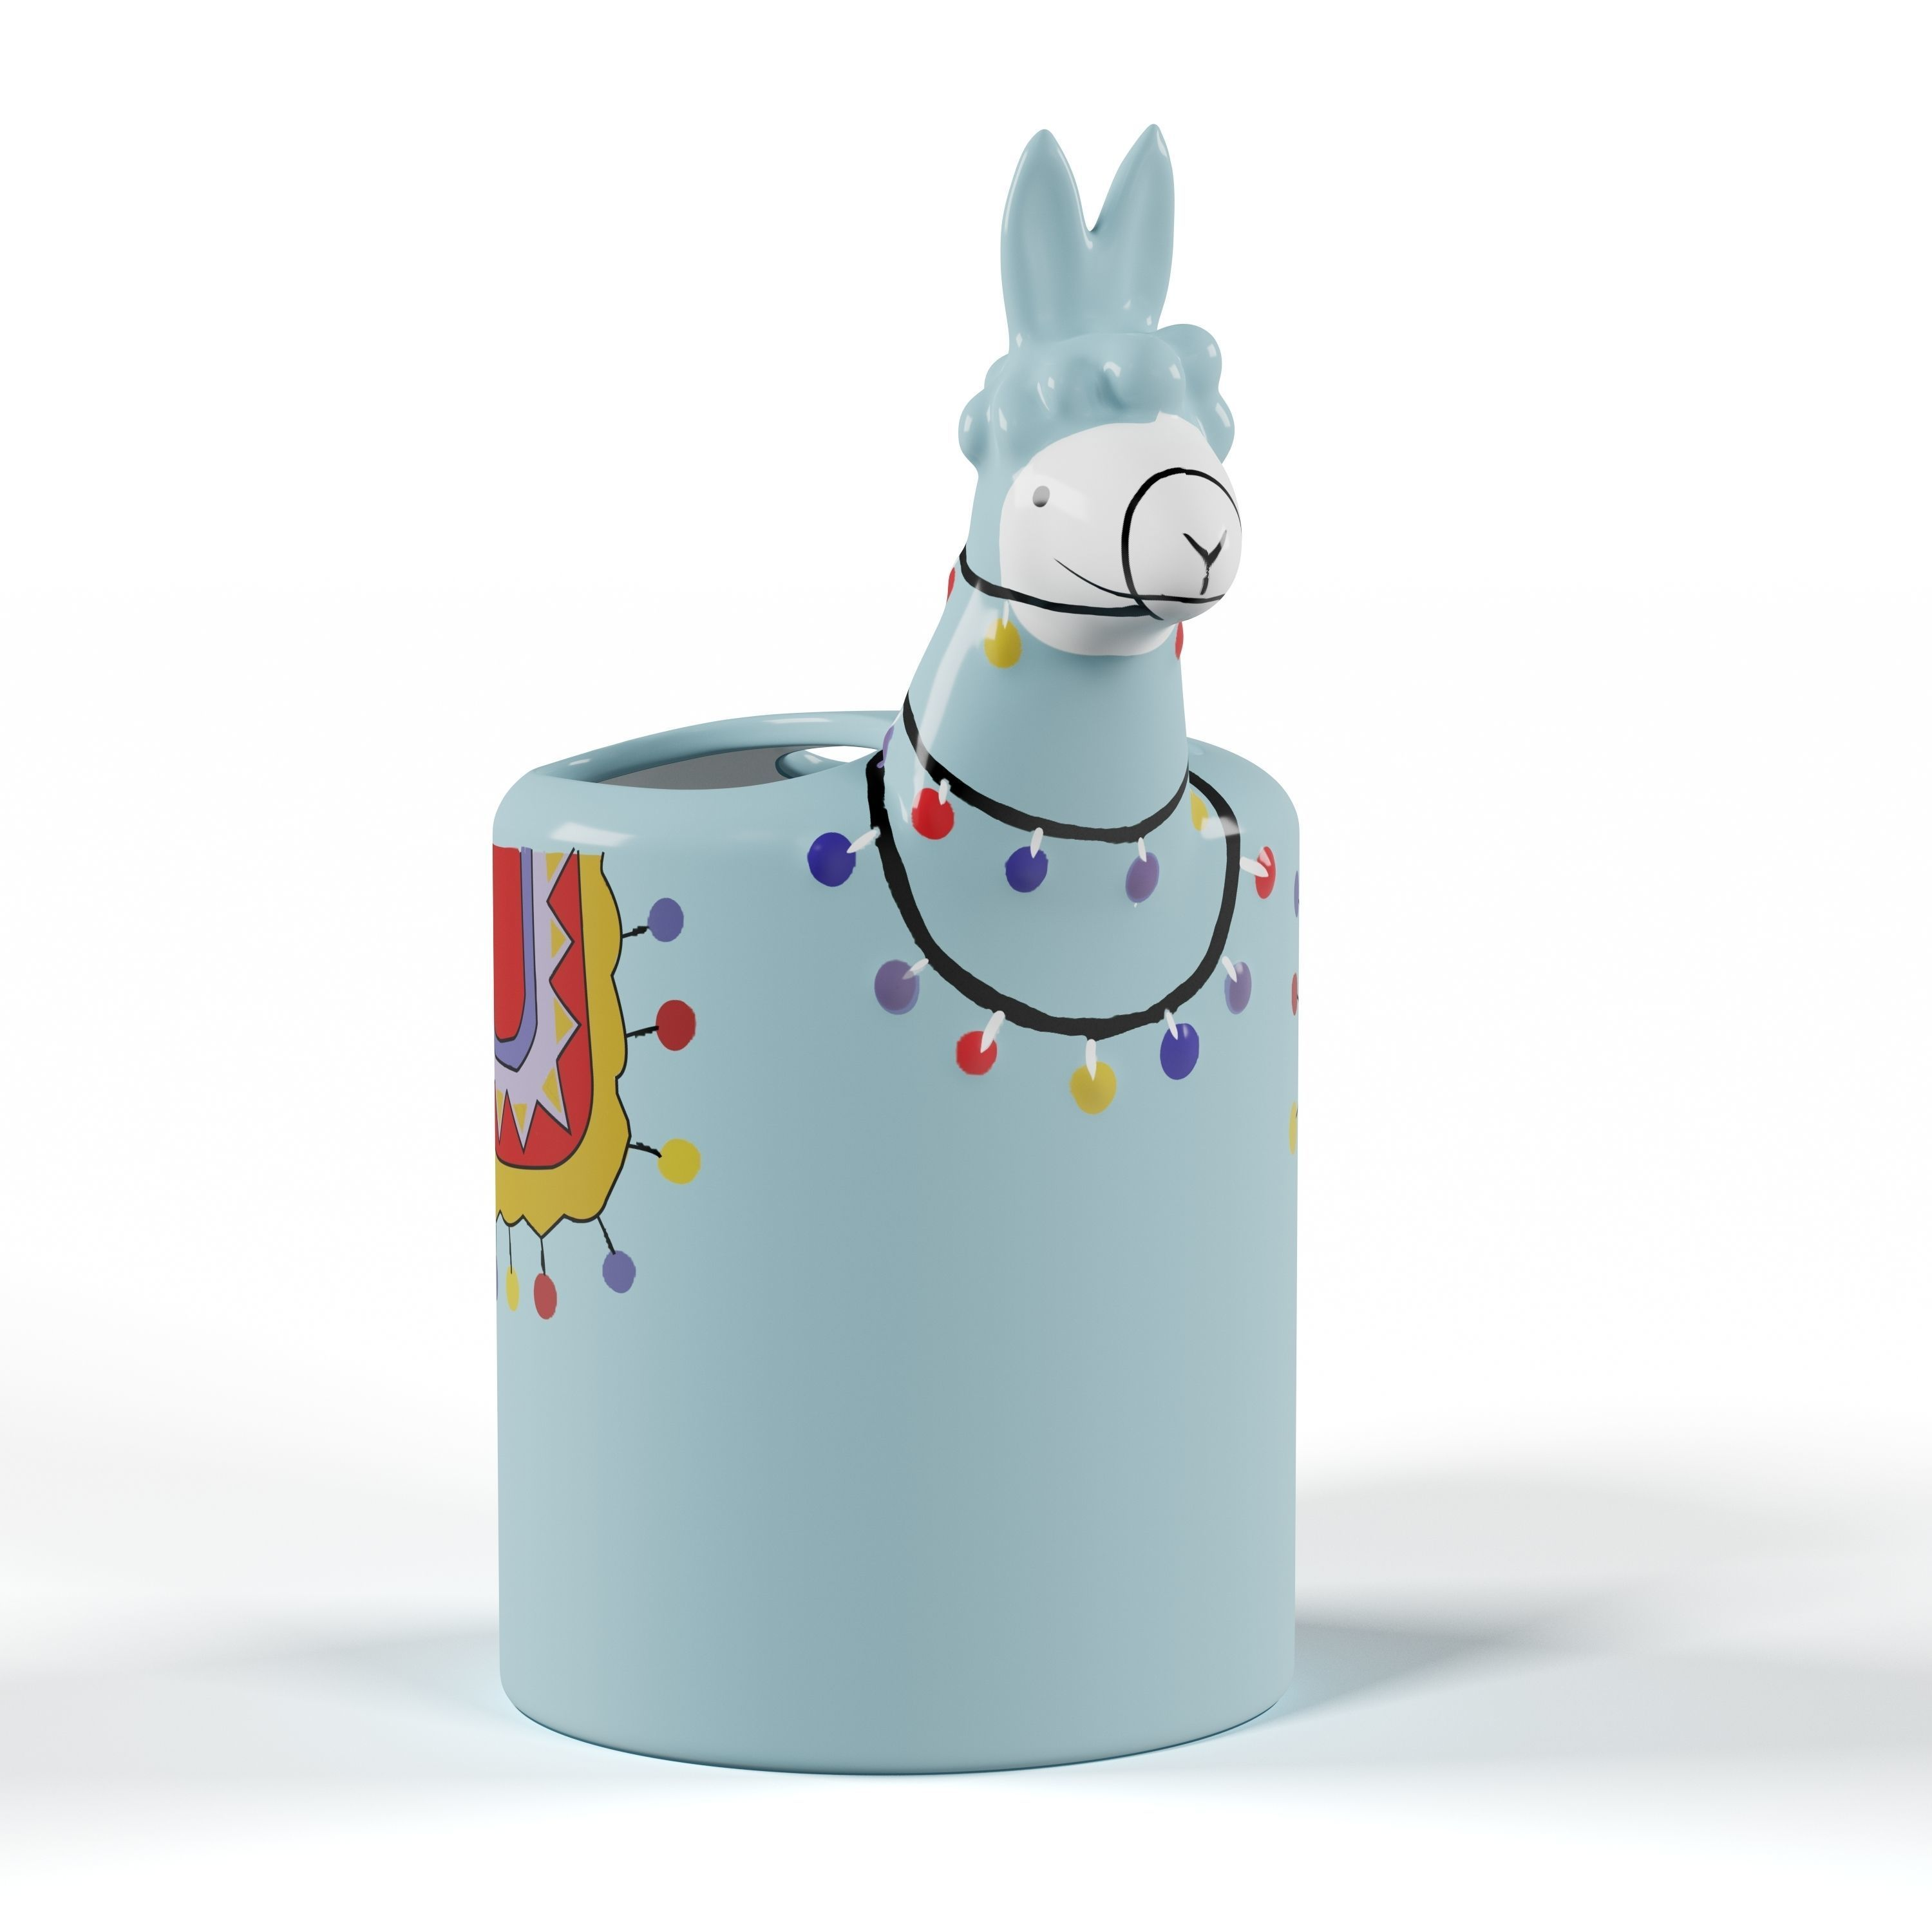 Llama shaped toothbrush container